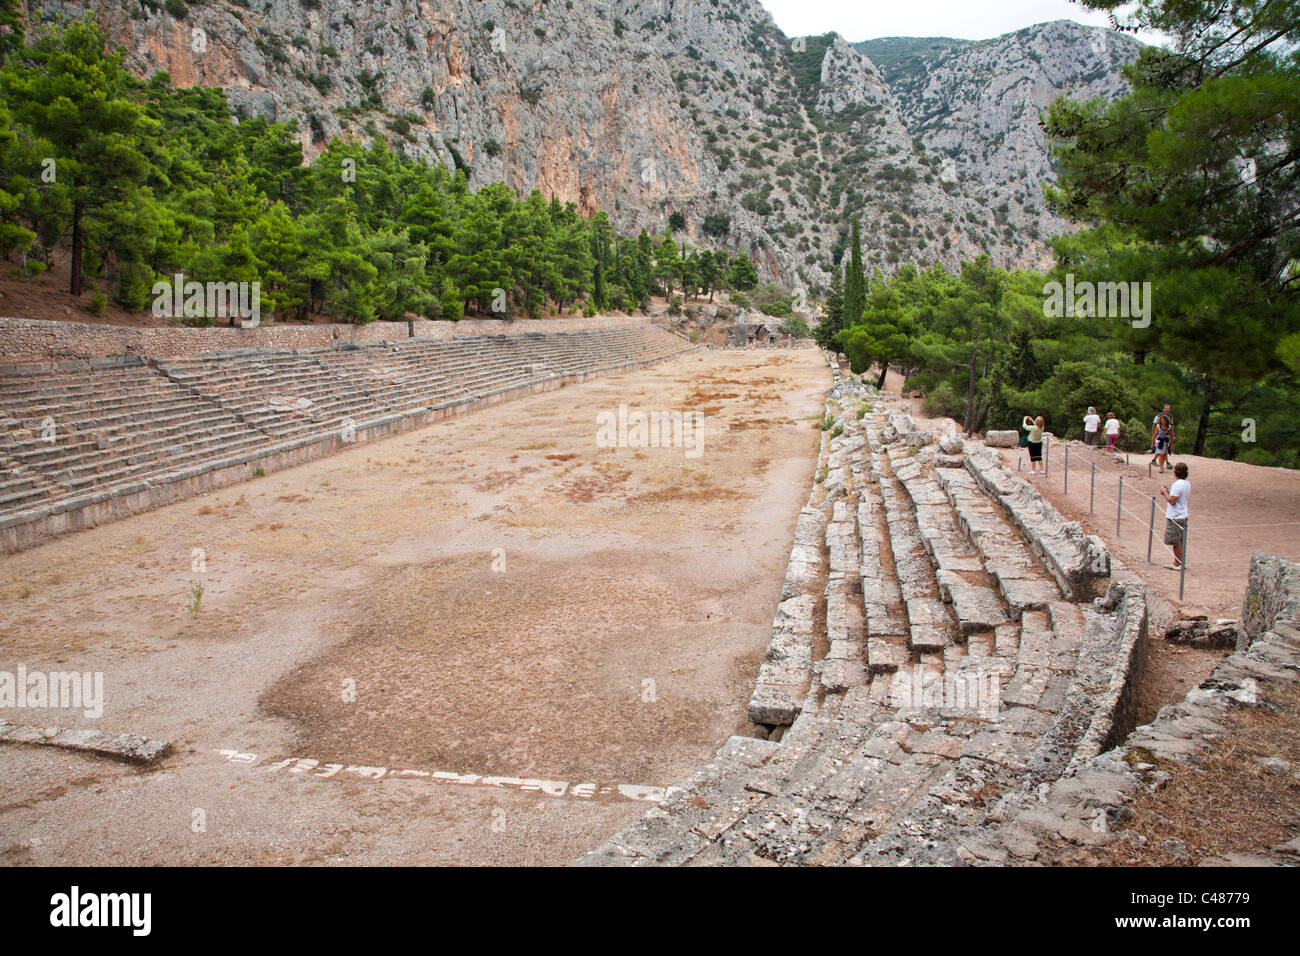 Stadium, Delphi Greece Stock Photo